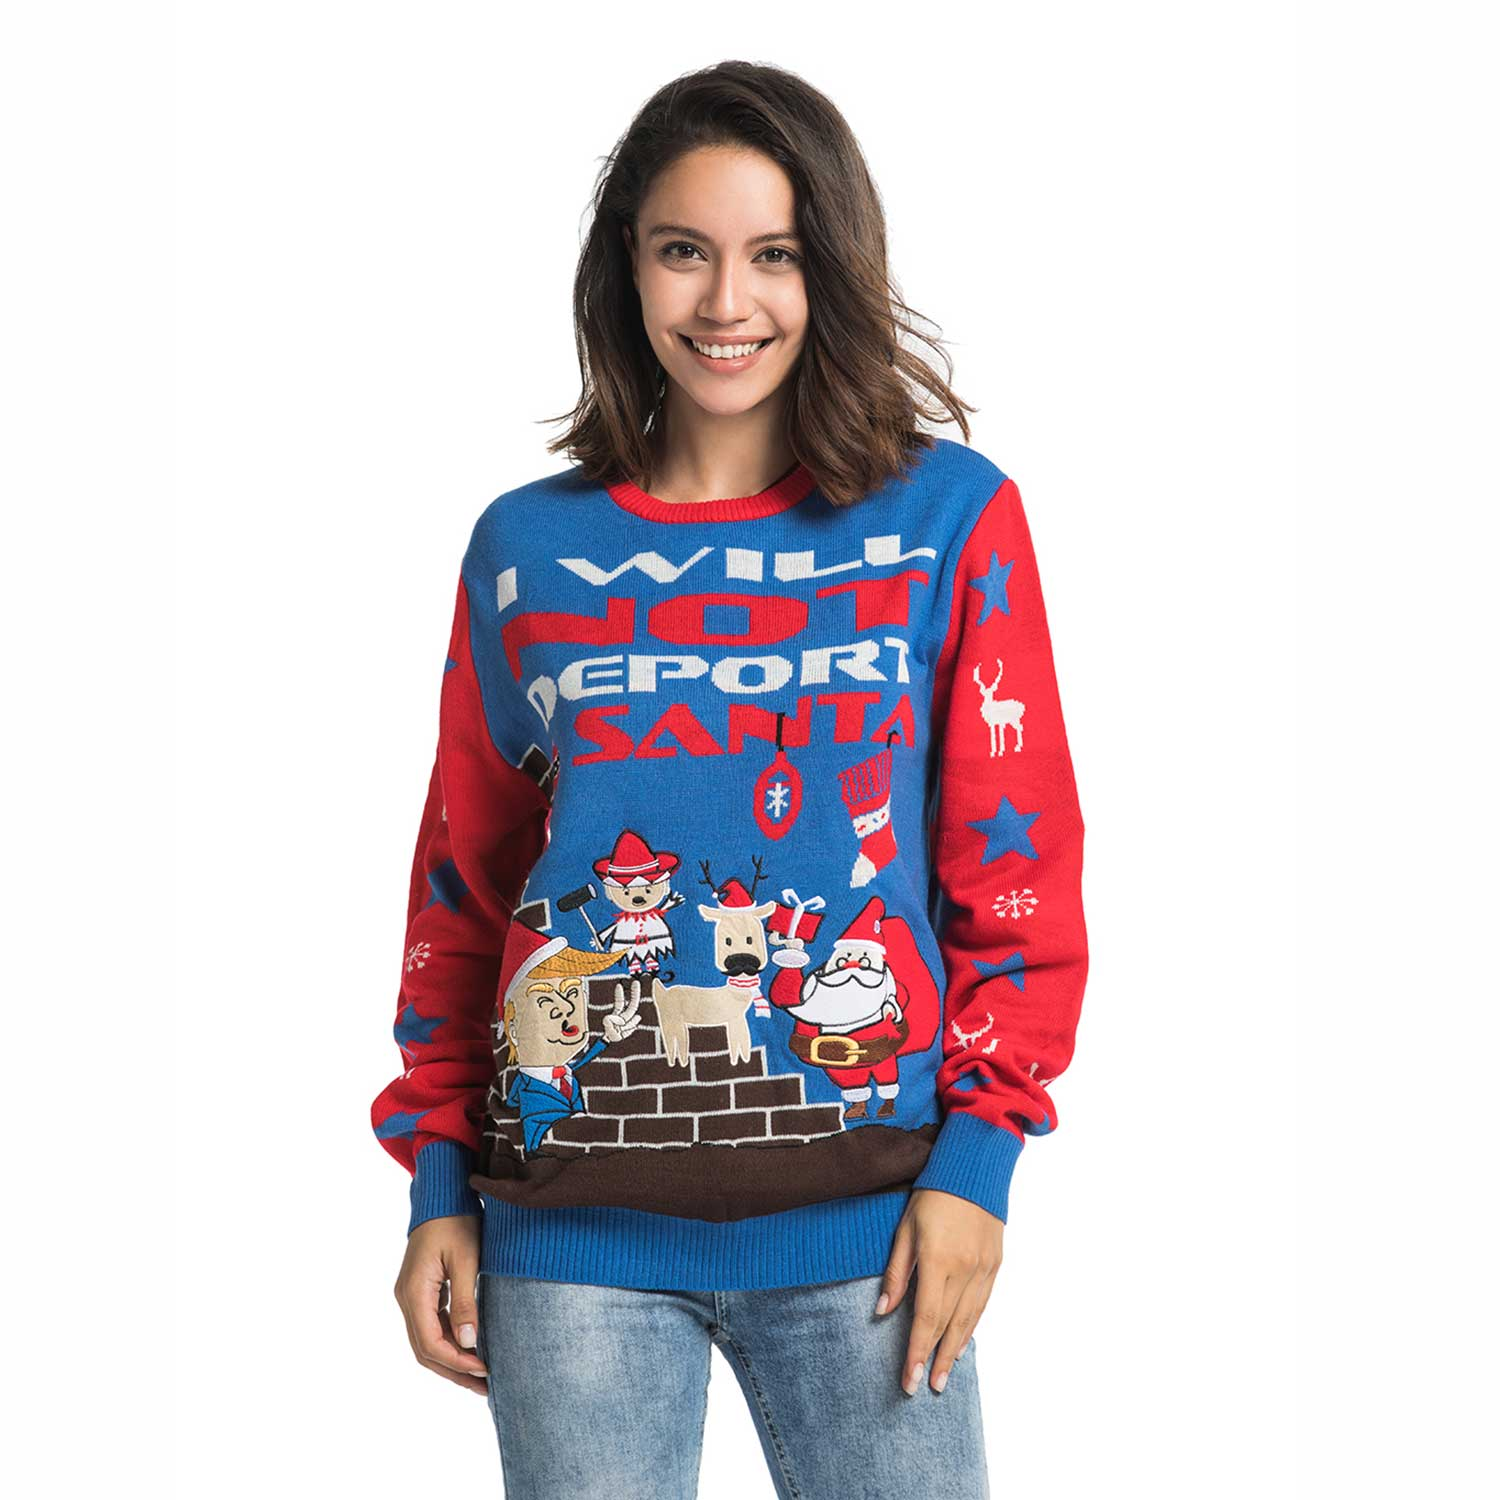 68579178725 Funny Rude Trump Women's Ugly Christmas Sweater